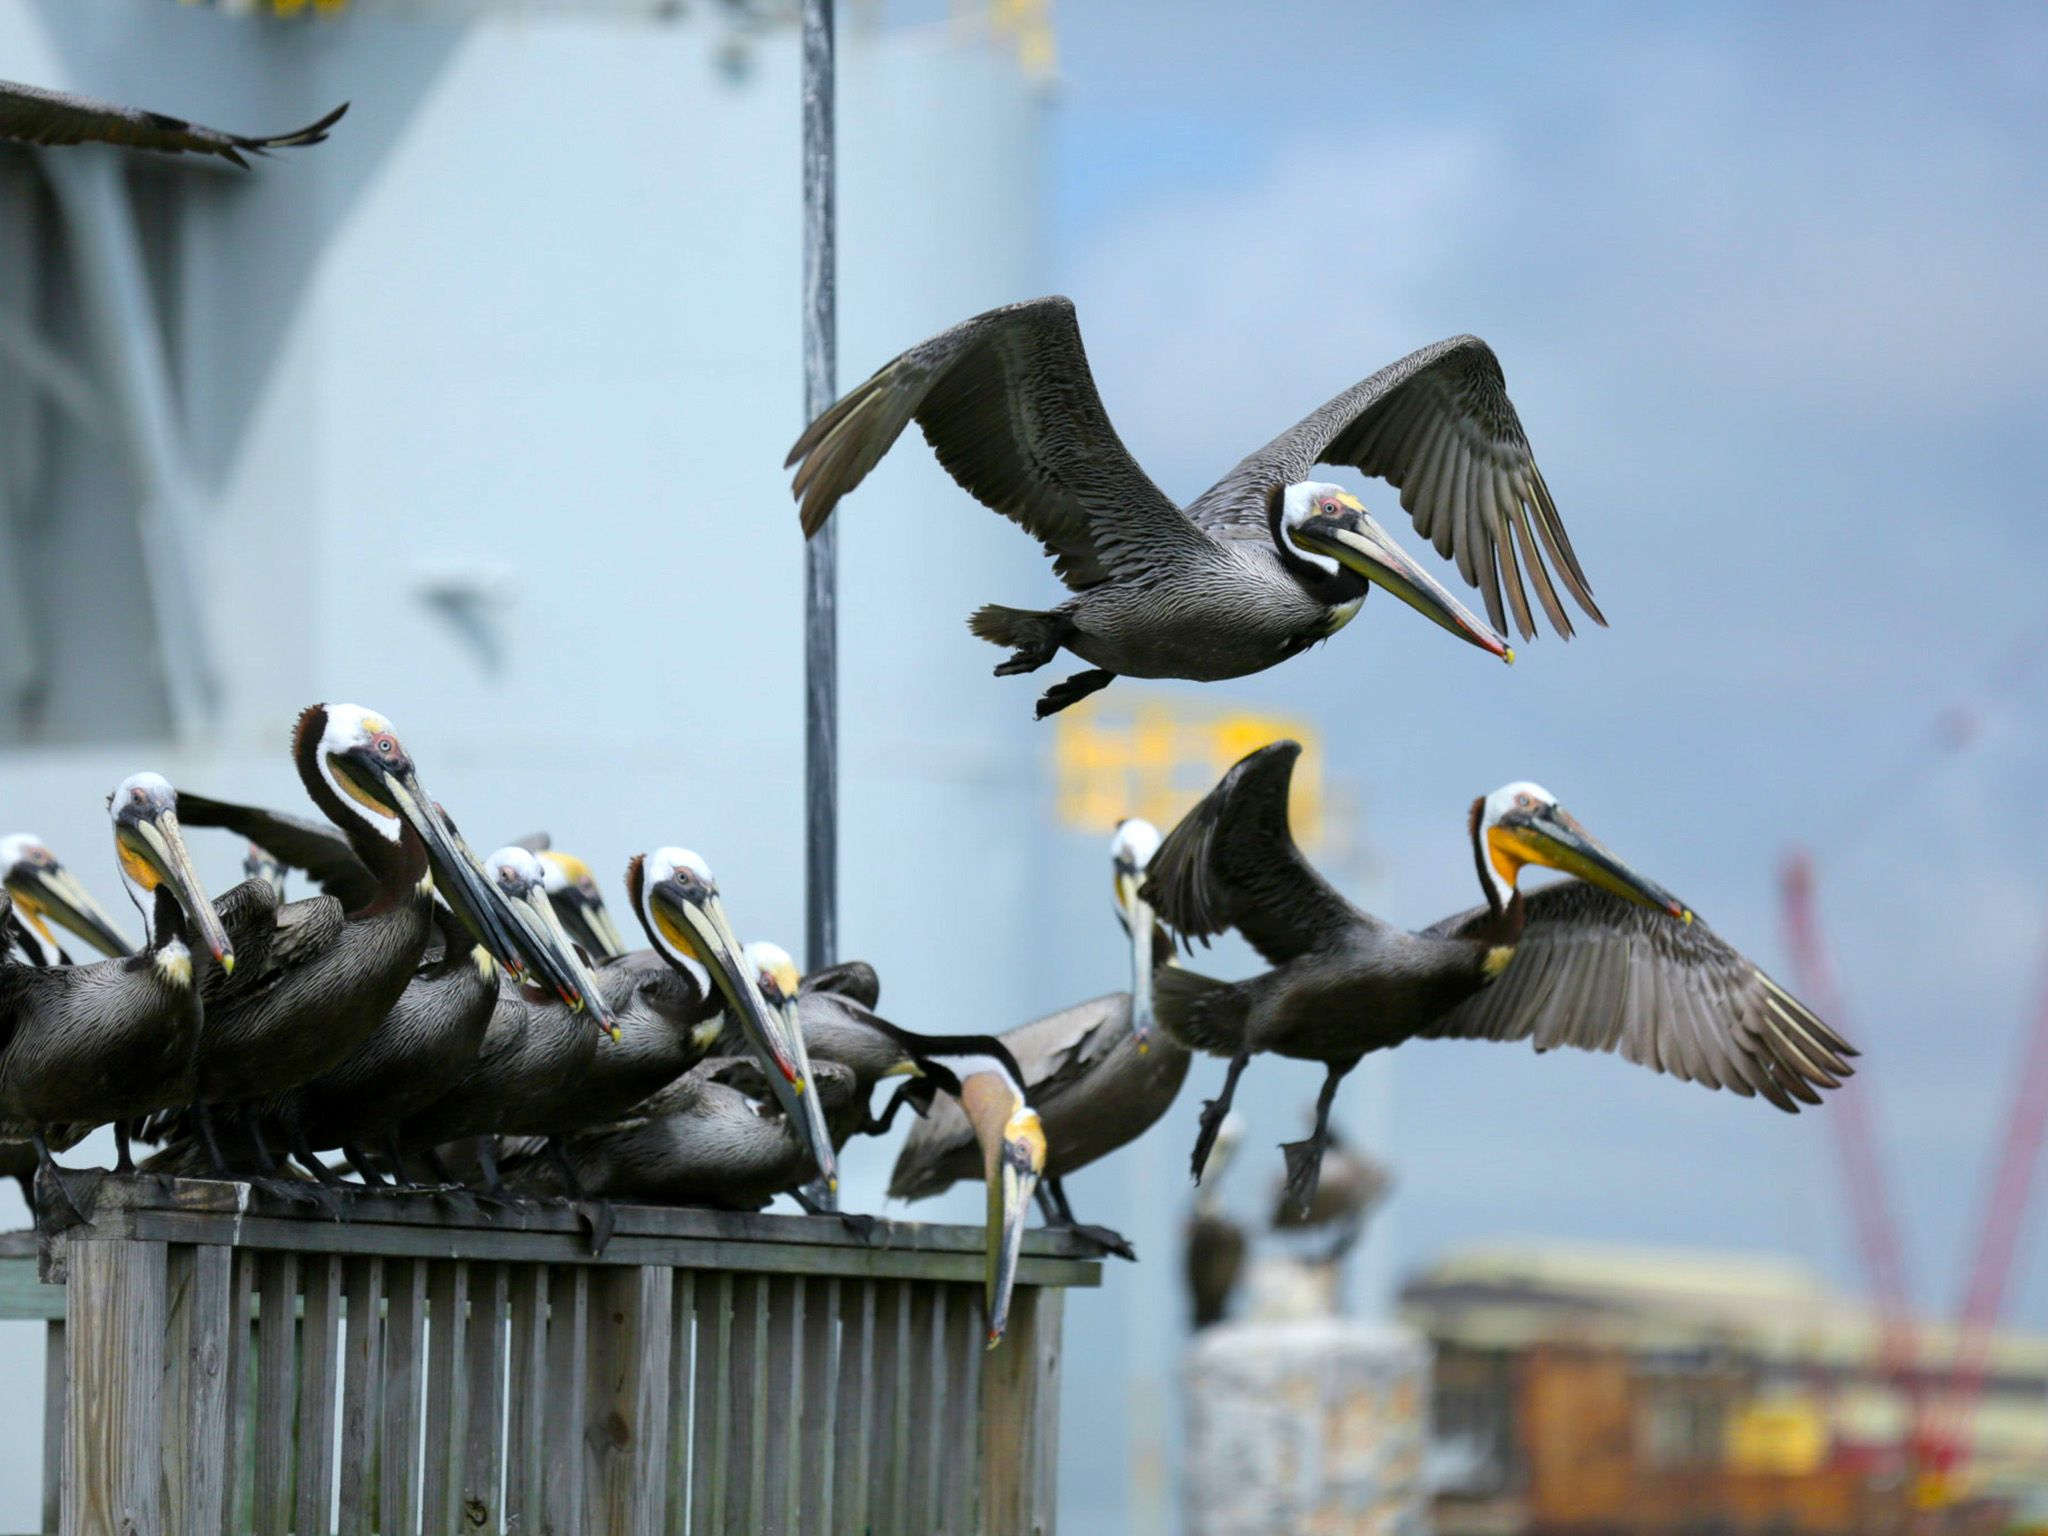 Galveston, Texas: Brown pelicans flying. This image is from Big Fish Texas. [Photo of the day - December 2015]